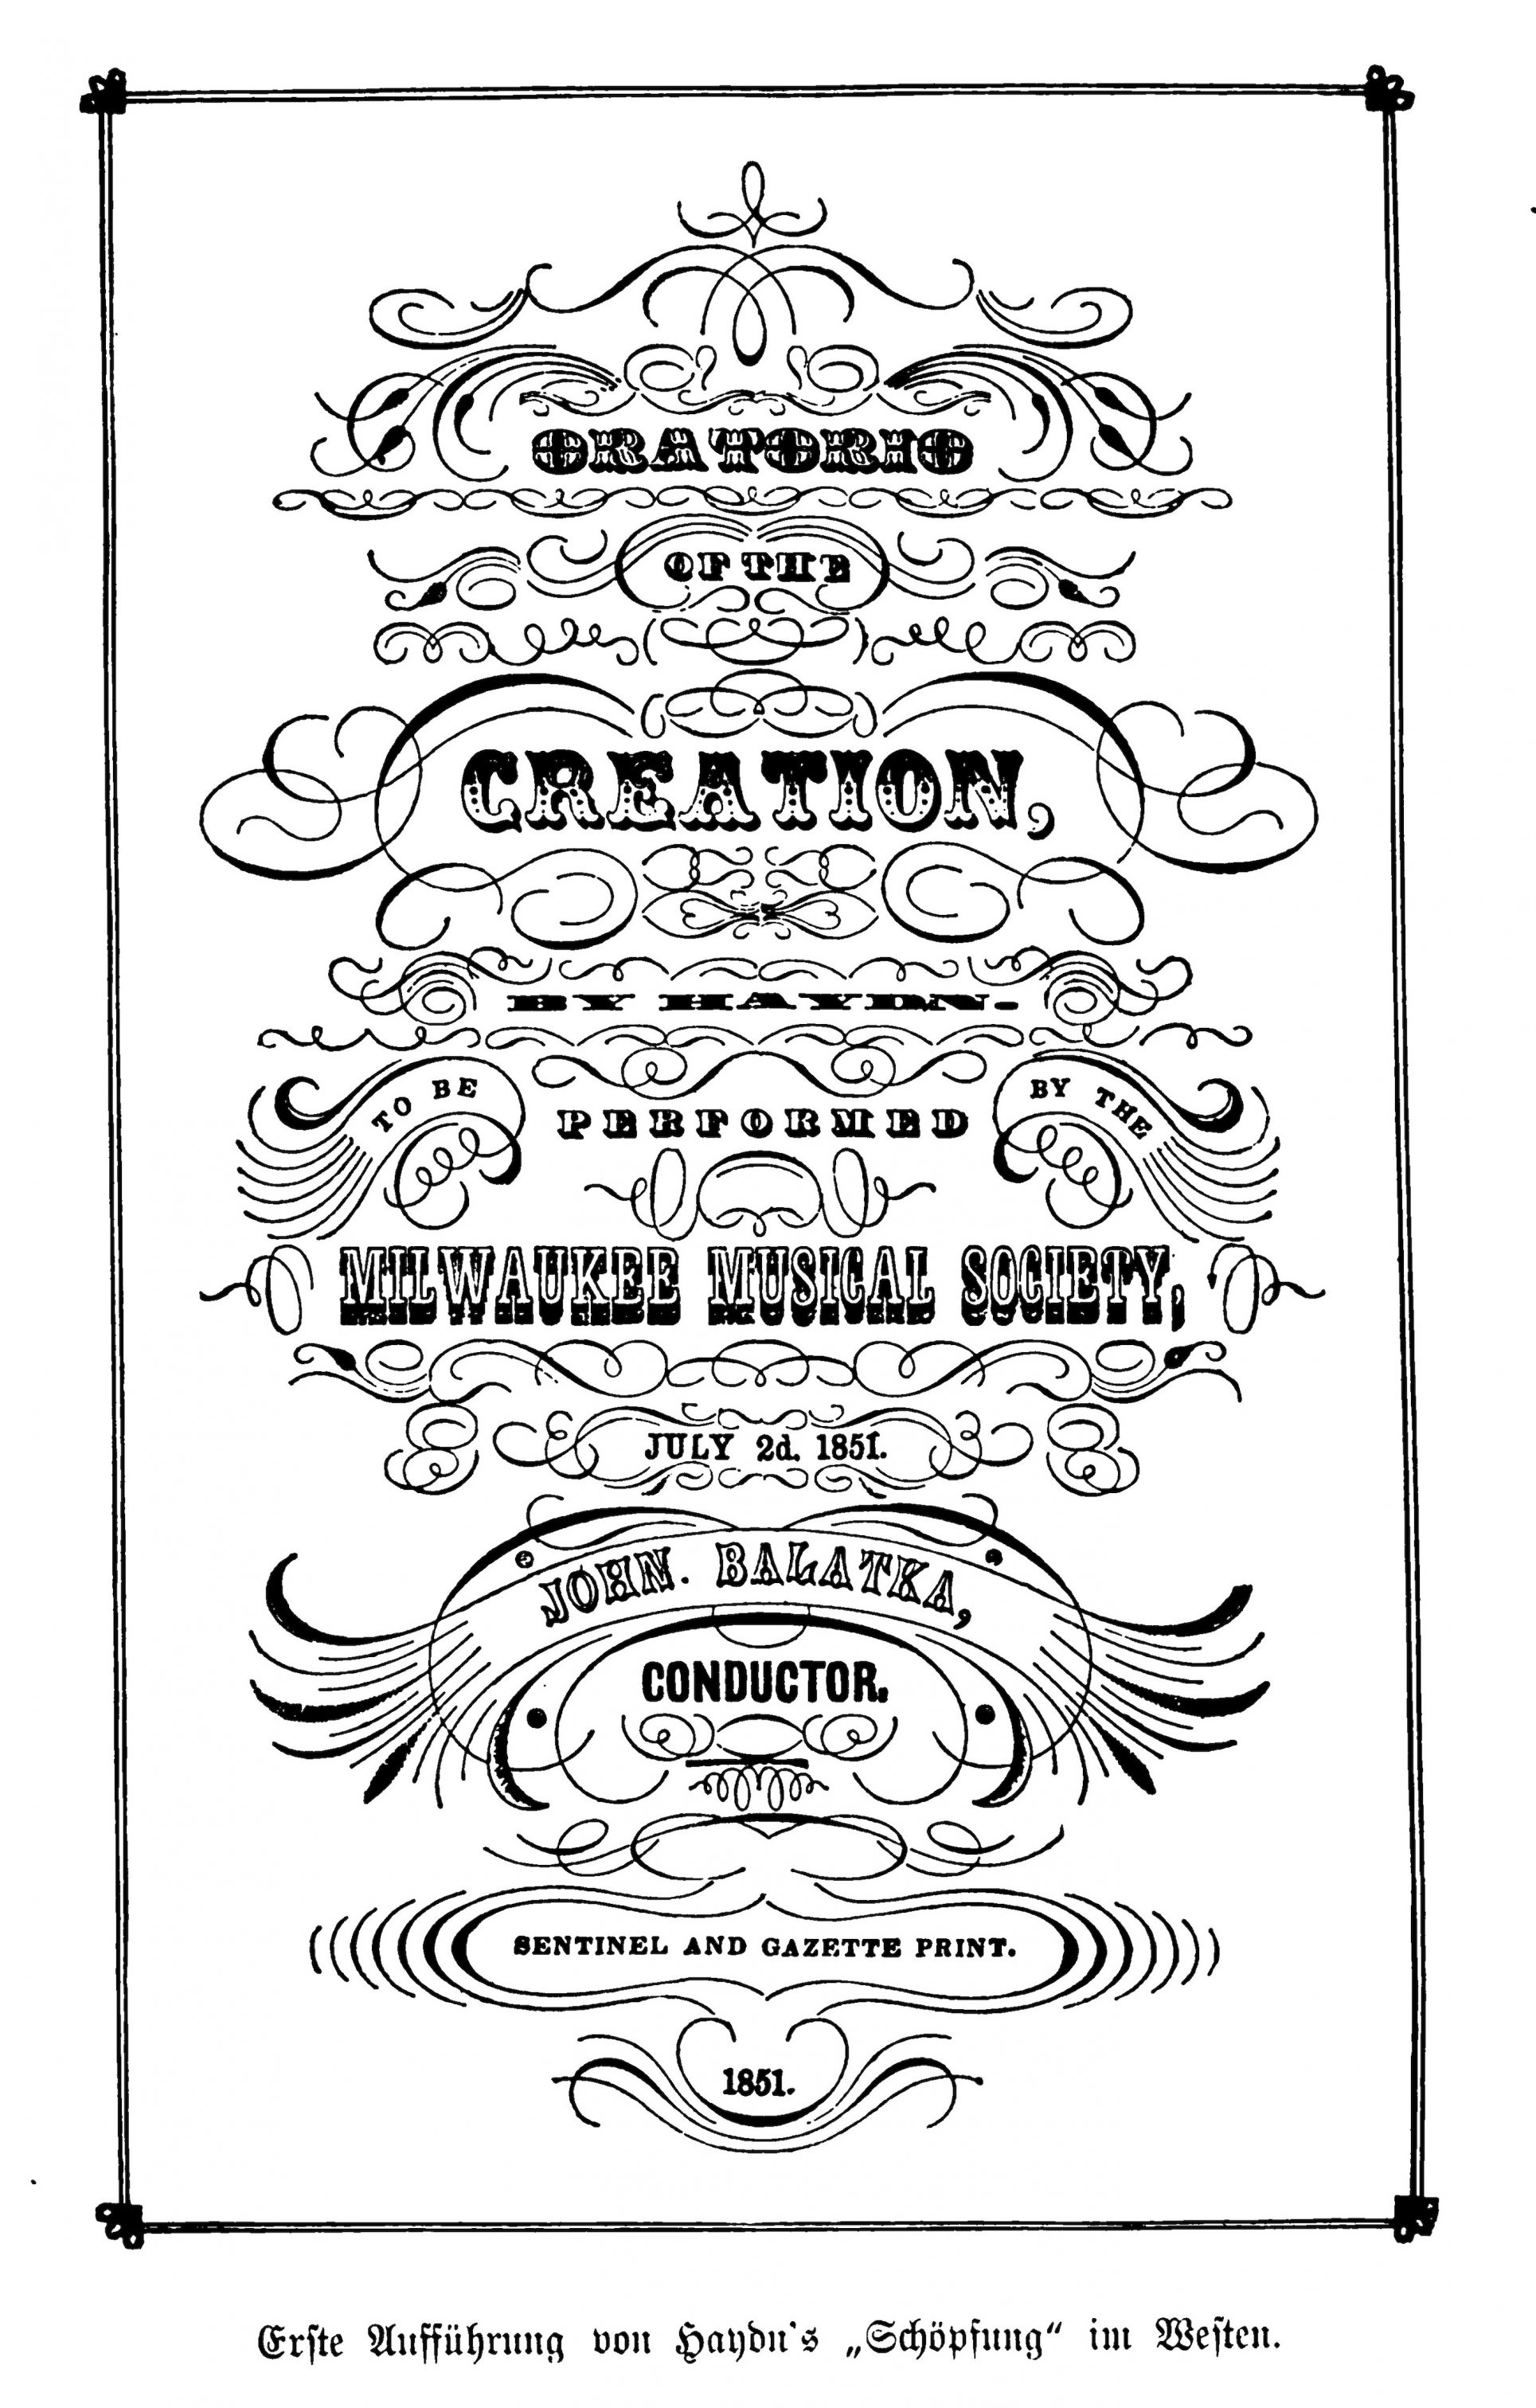 This poster from 1851 advertises an upcoming Milwaukee Musical Society performance.